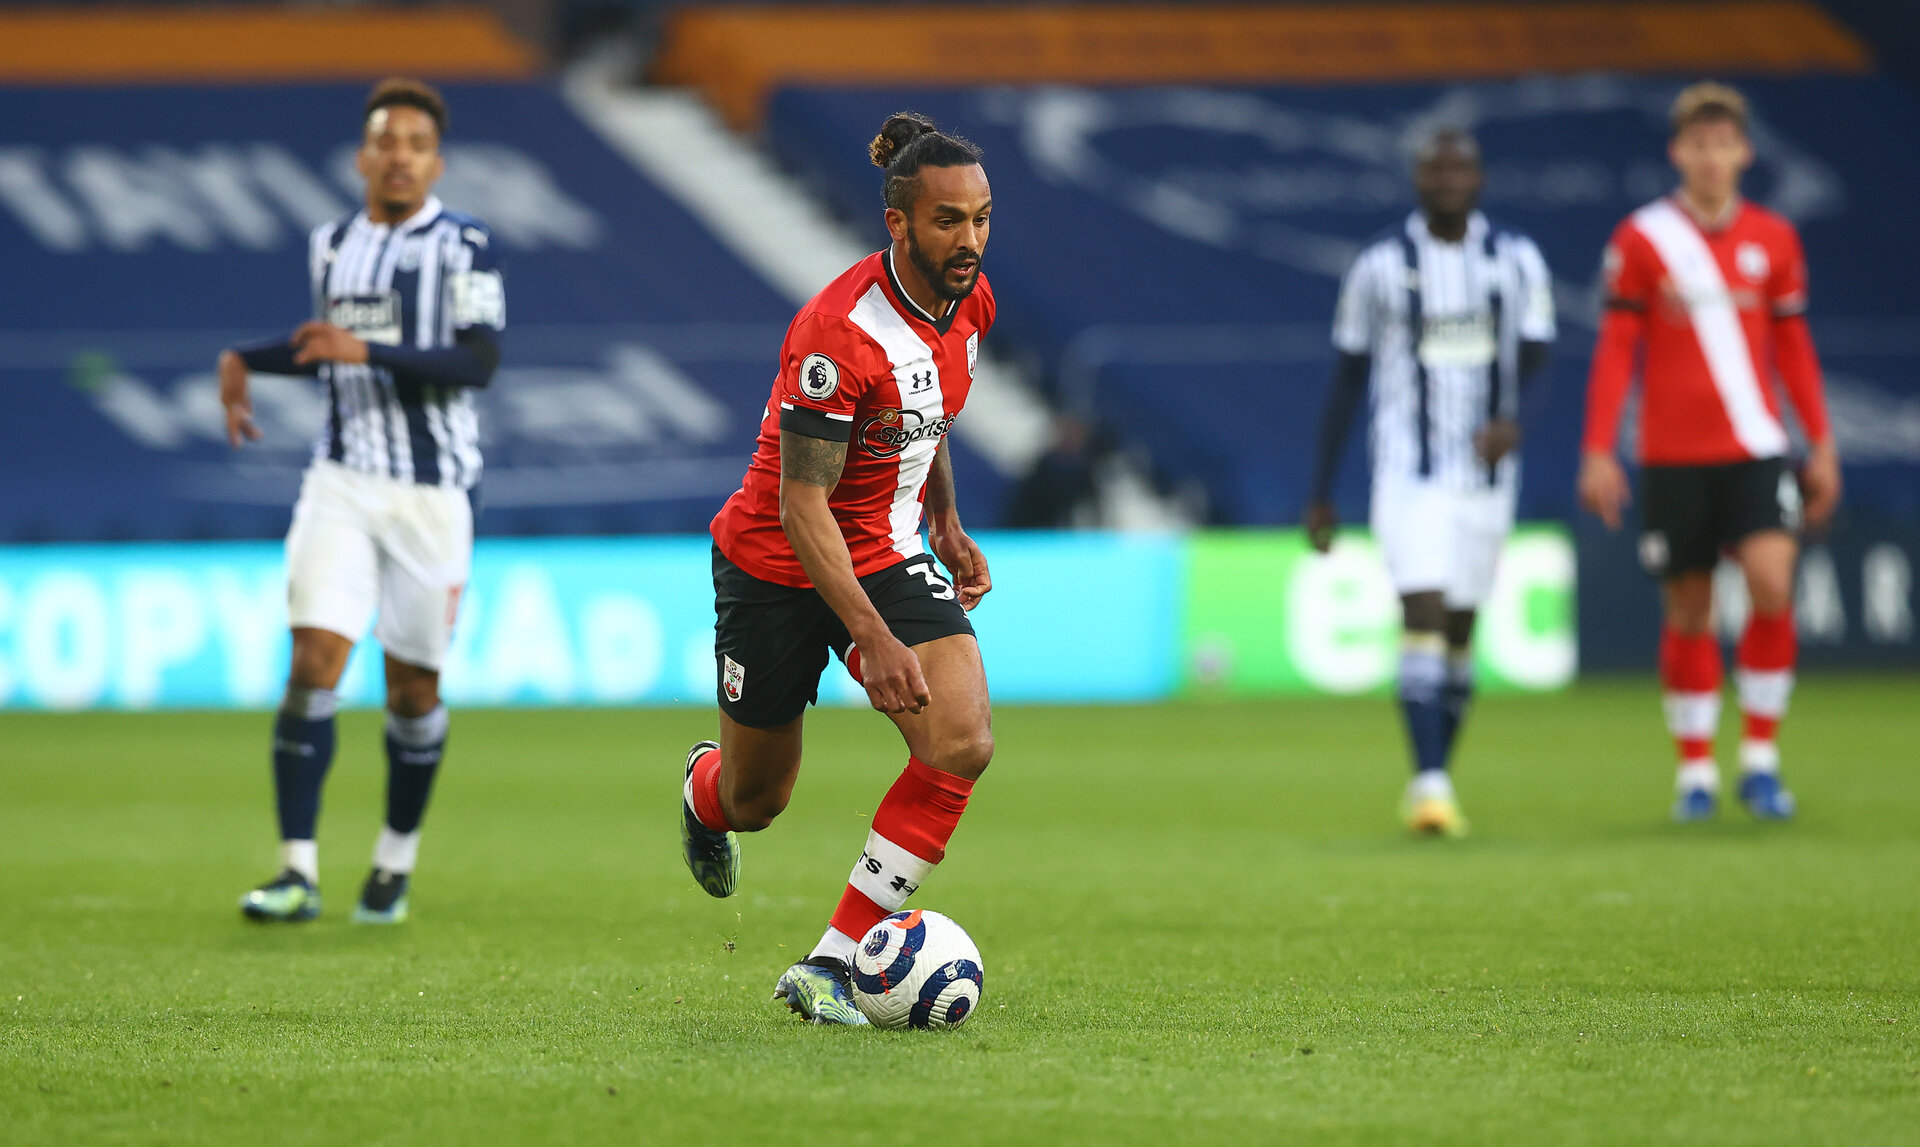 WEST BROMWICH, ENGLAND - APRIL 12: Theo Walcott of during the Premier League match between West Bromwich Albion and Southampton at The Hawthorns on April 12, 2021 in West Bromwich, England. Sporting stadiums around the UK remain under strict restrictions due to the Coronavirus Pandemic as Government social distancing laws prohibit fans inside venues resulting in games being played behind closed doors. (Photo by Matt Watson/Southampton FC via Getty Images)